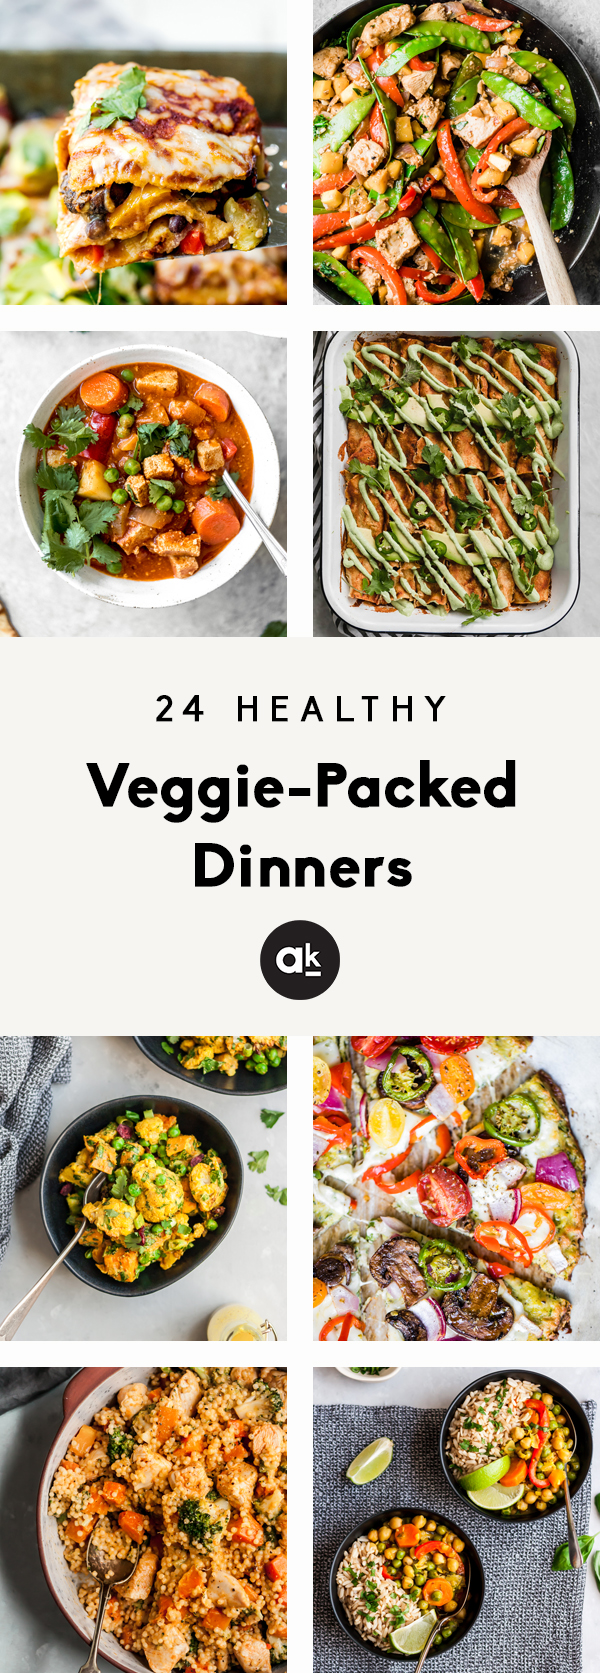 24 delicious, healthy veggie-packed dinners to make during the week! These recipes have plenty of protein and perfect for meal prep or family dinners.